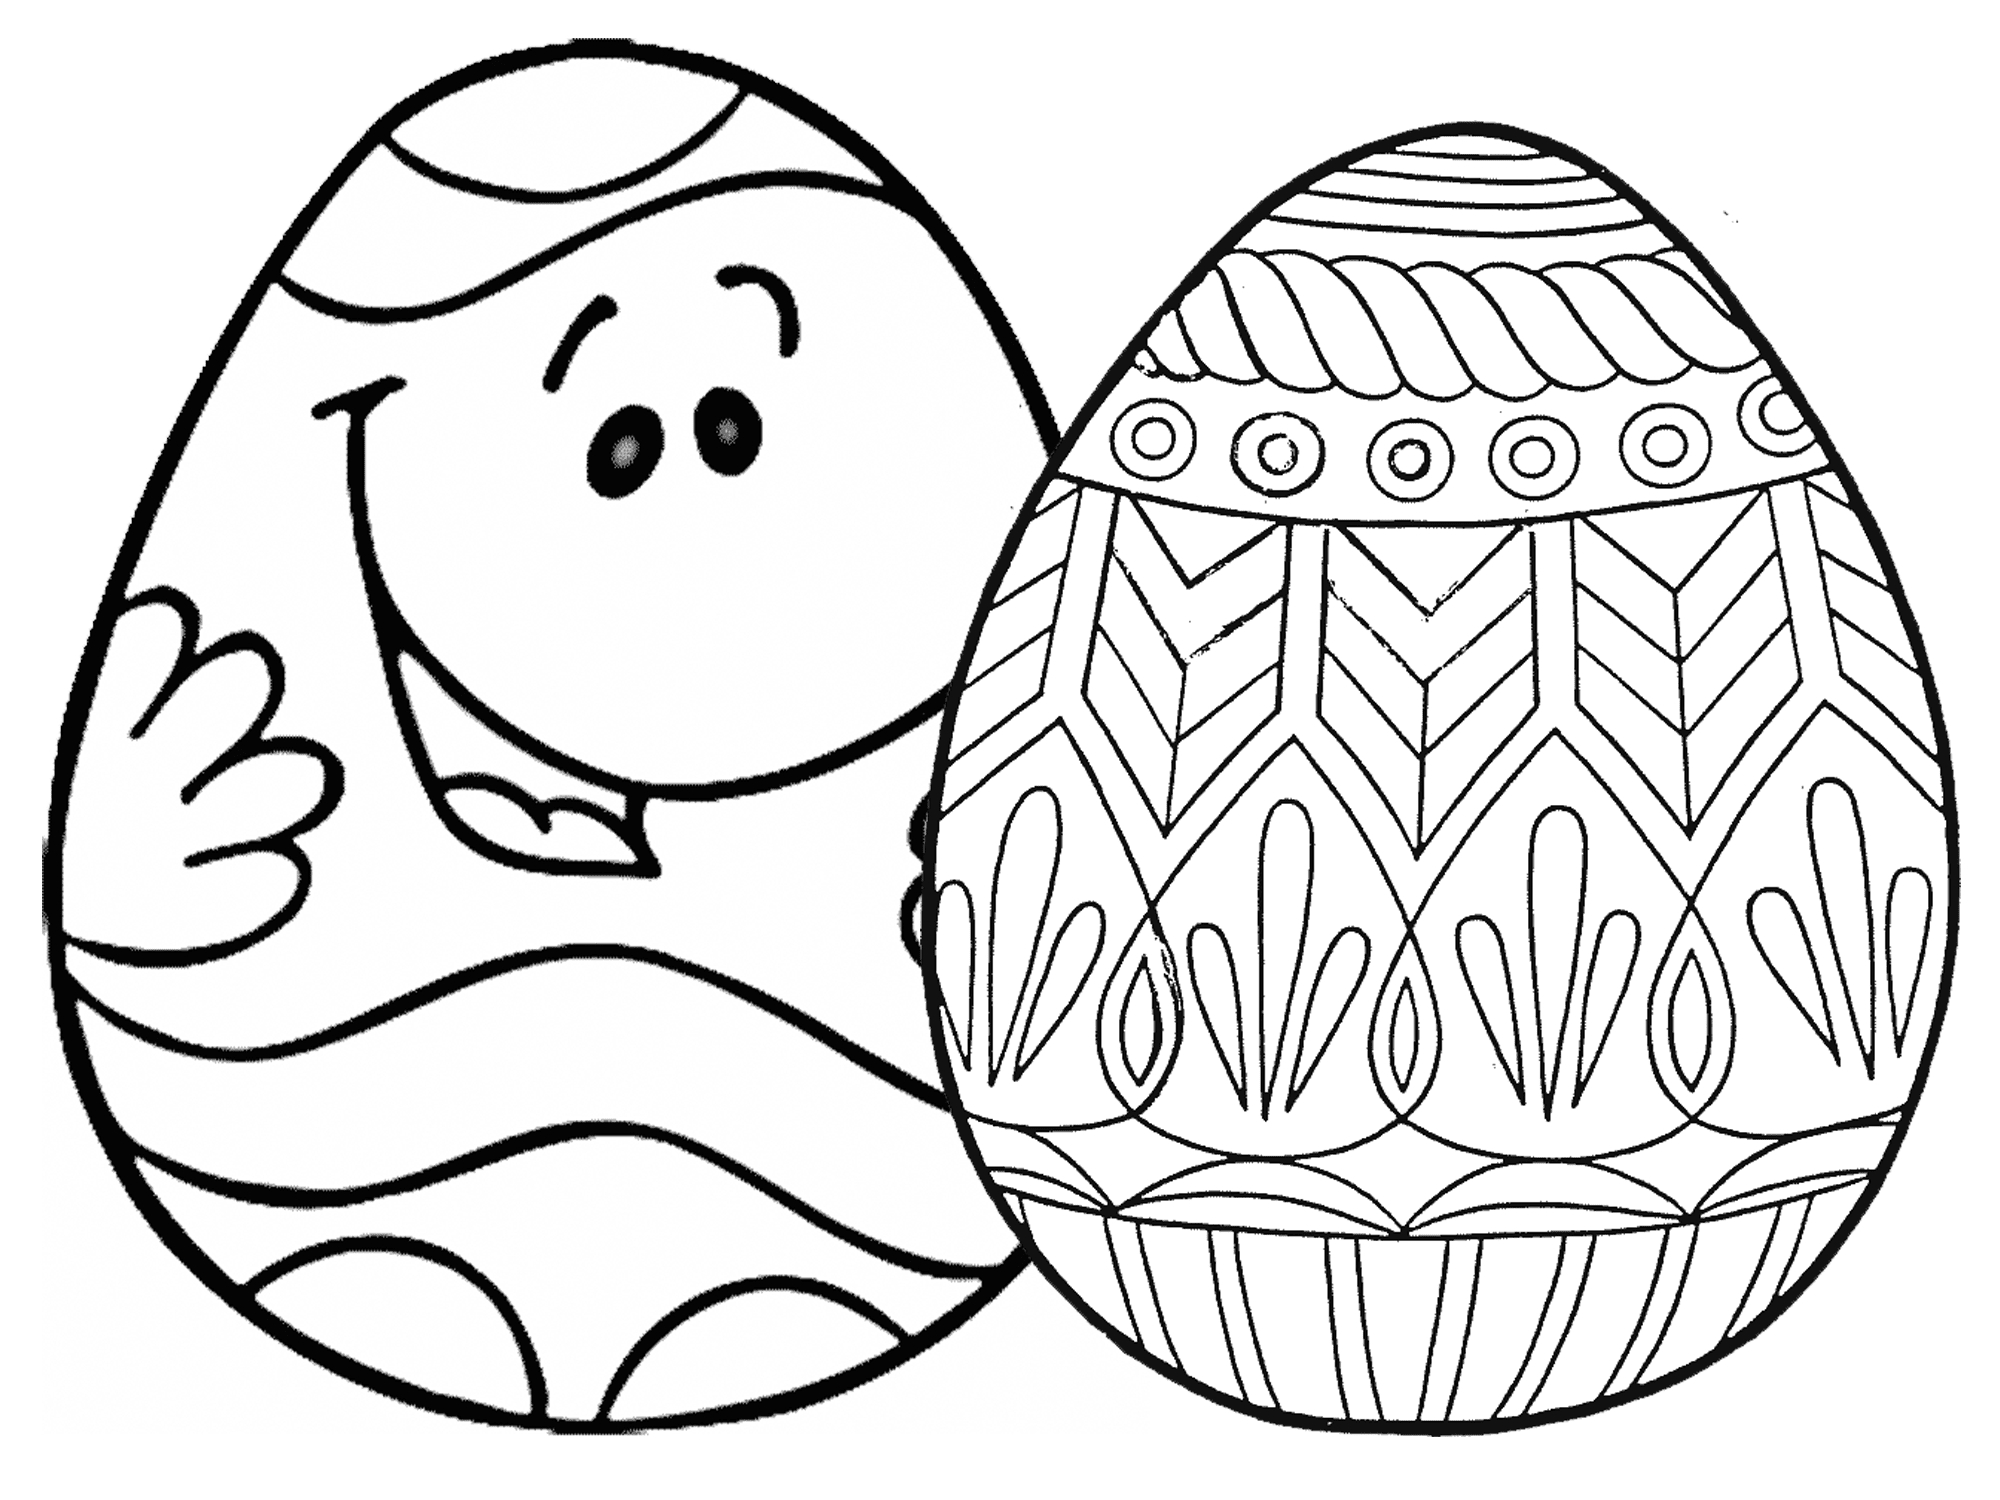 7 Places For Free, Printable Easter Egg Coloring Pages - Free Printable Easter Drawings